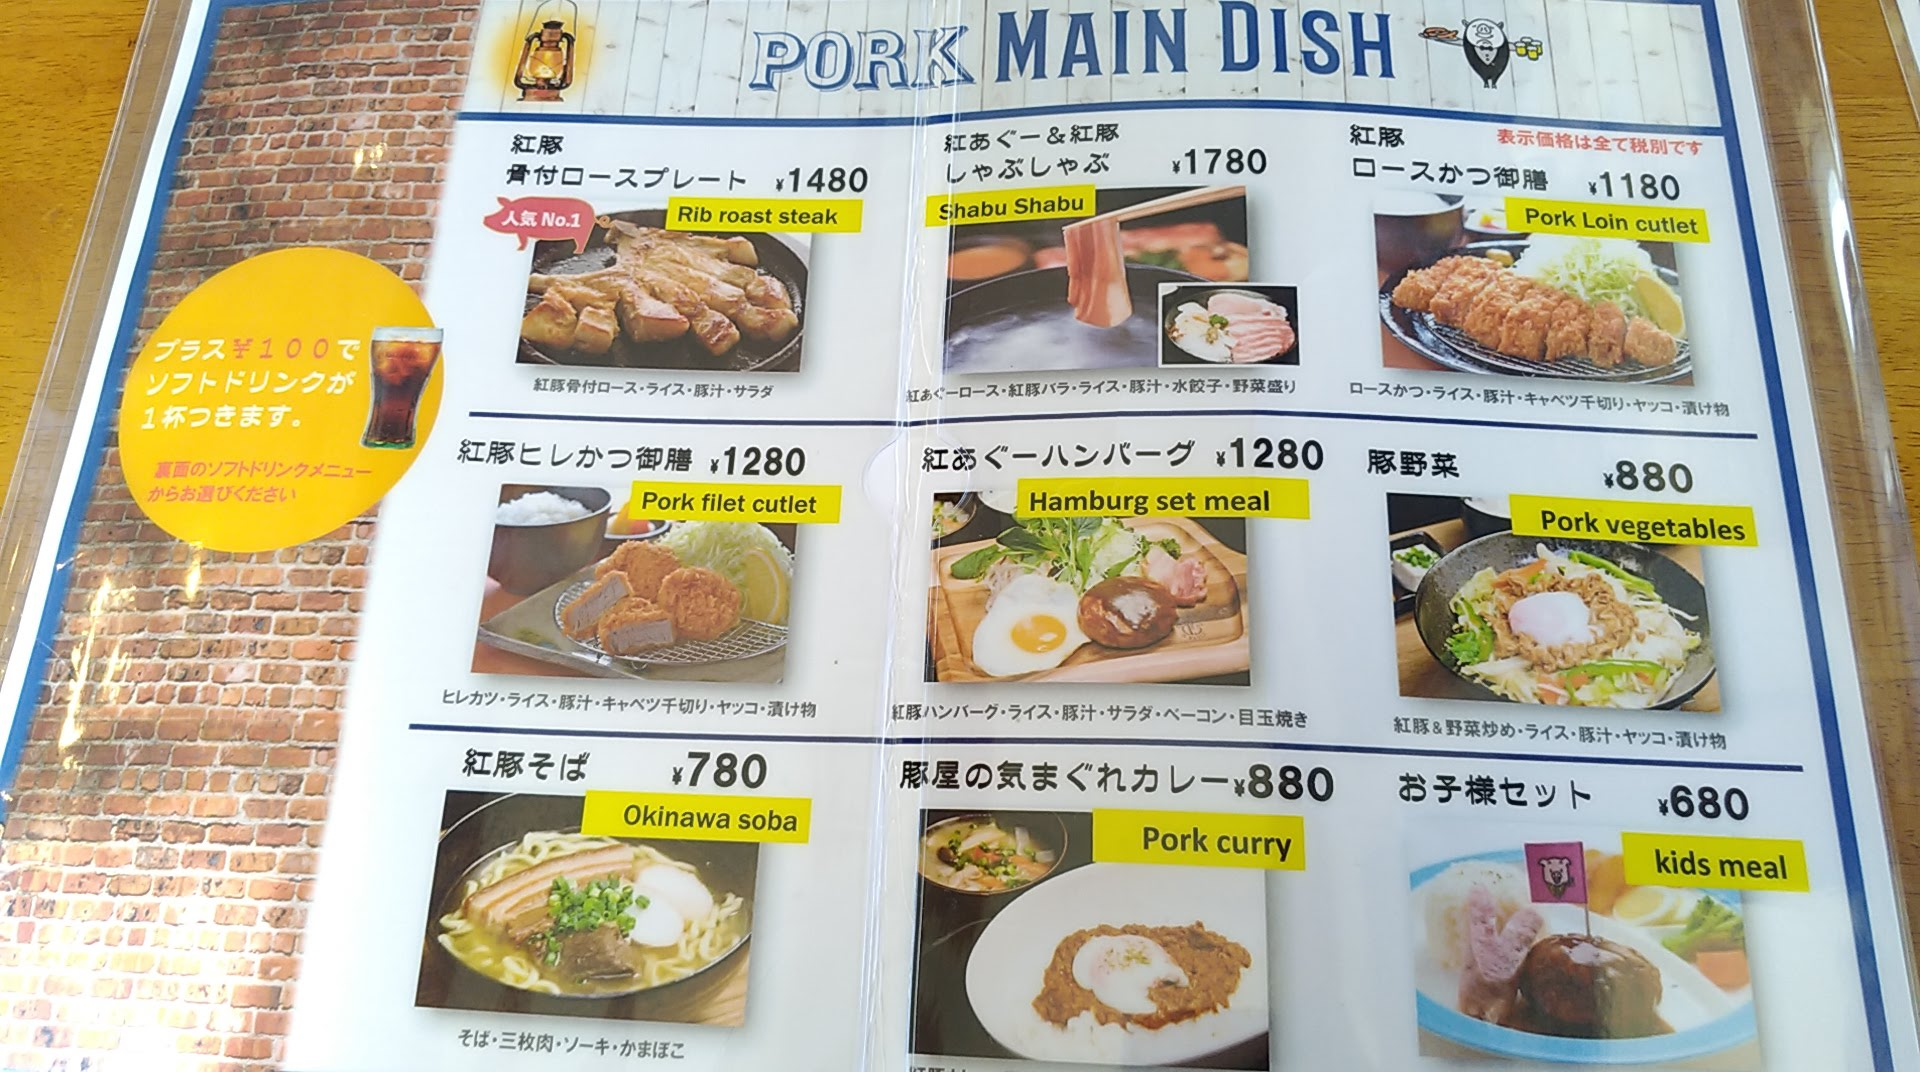 the menu of Okinawa pork village